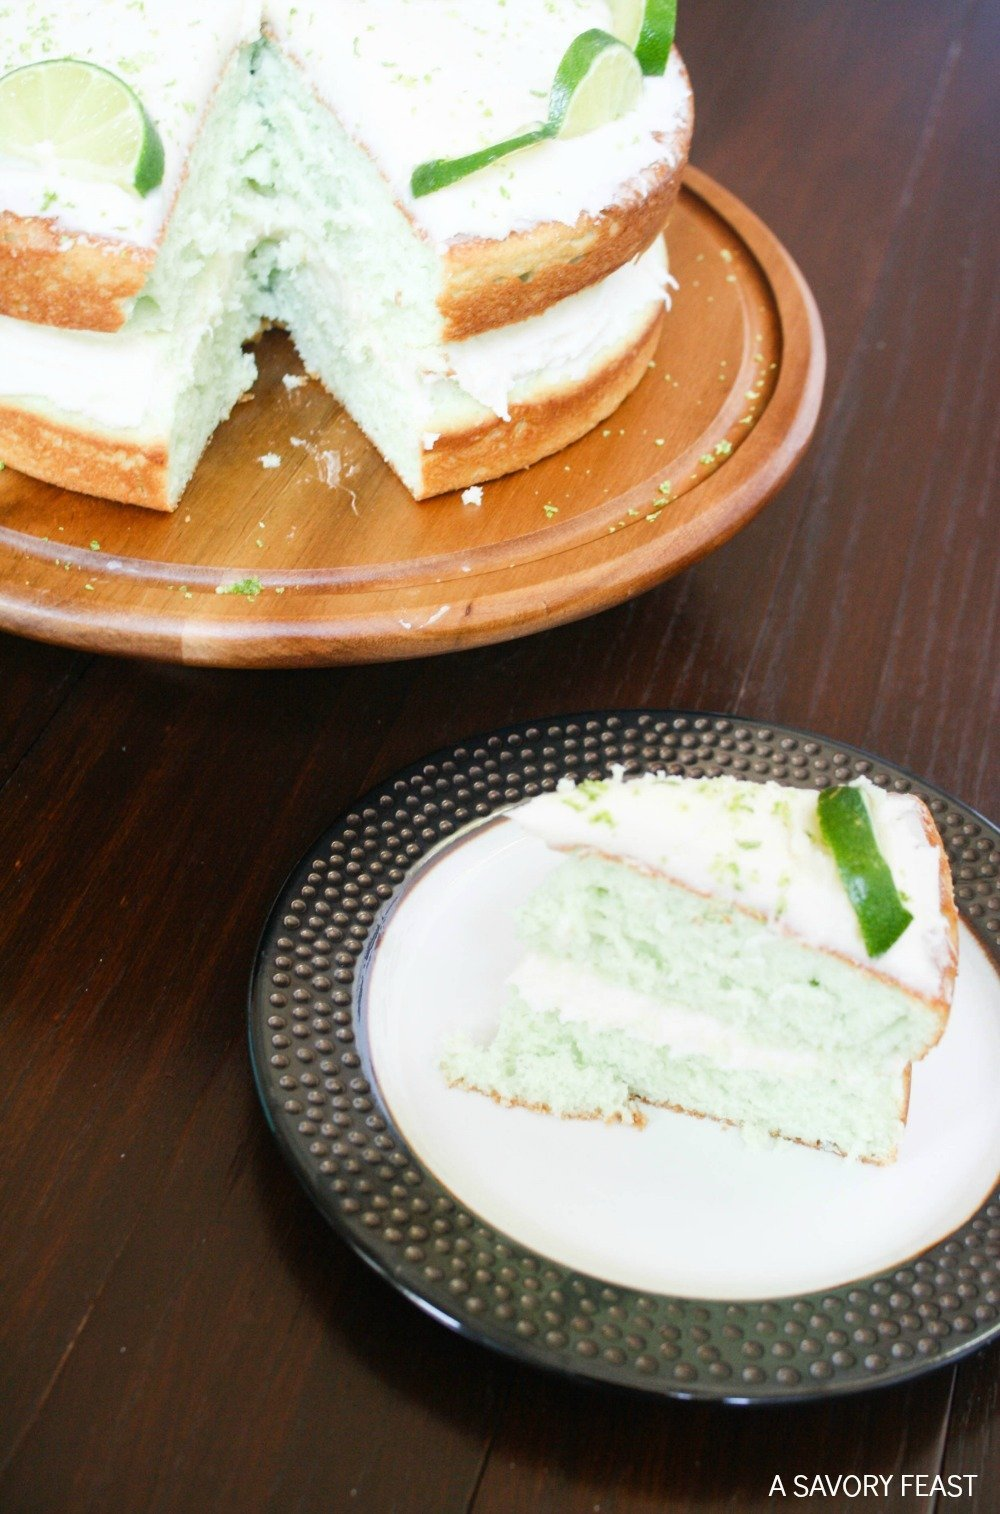 You've got to try this refreshing layer cake this summer! This Key Lime Layer Cake is made from scratch with a secret ingredient to give it a pretty lime color!